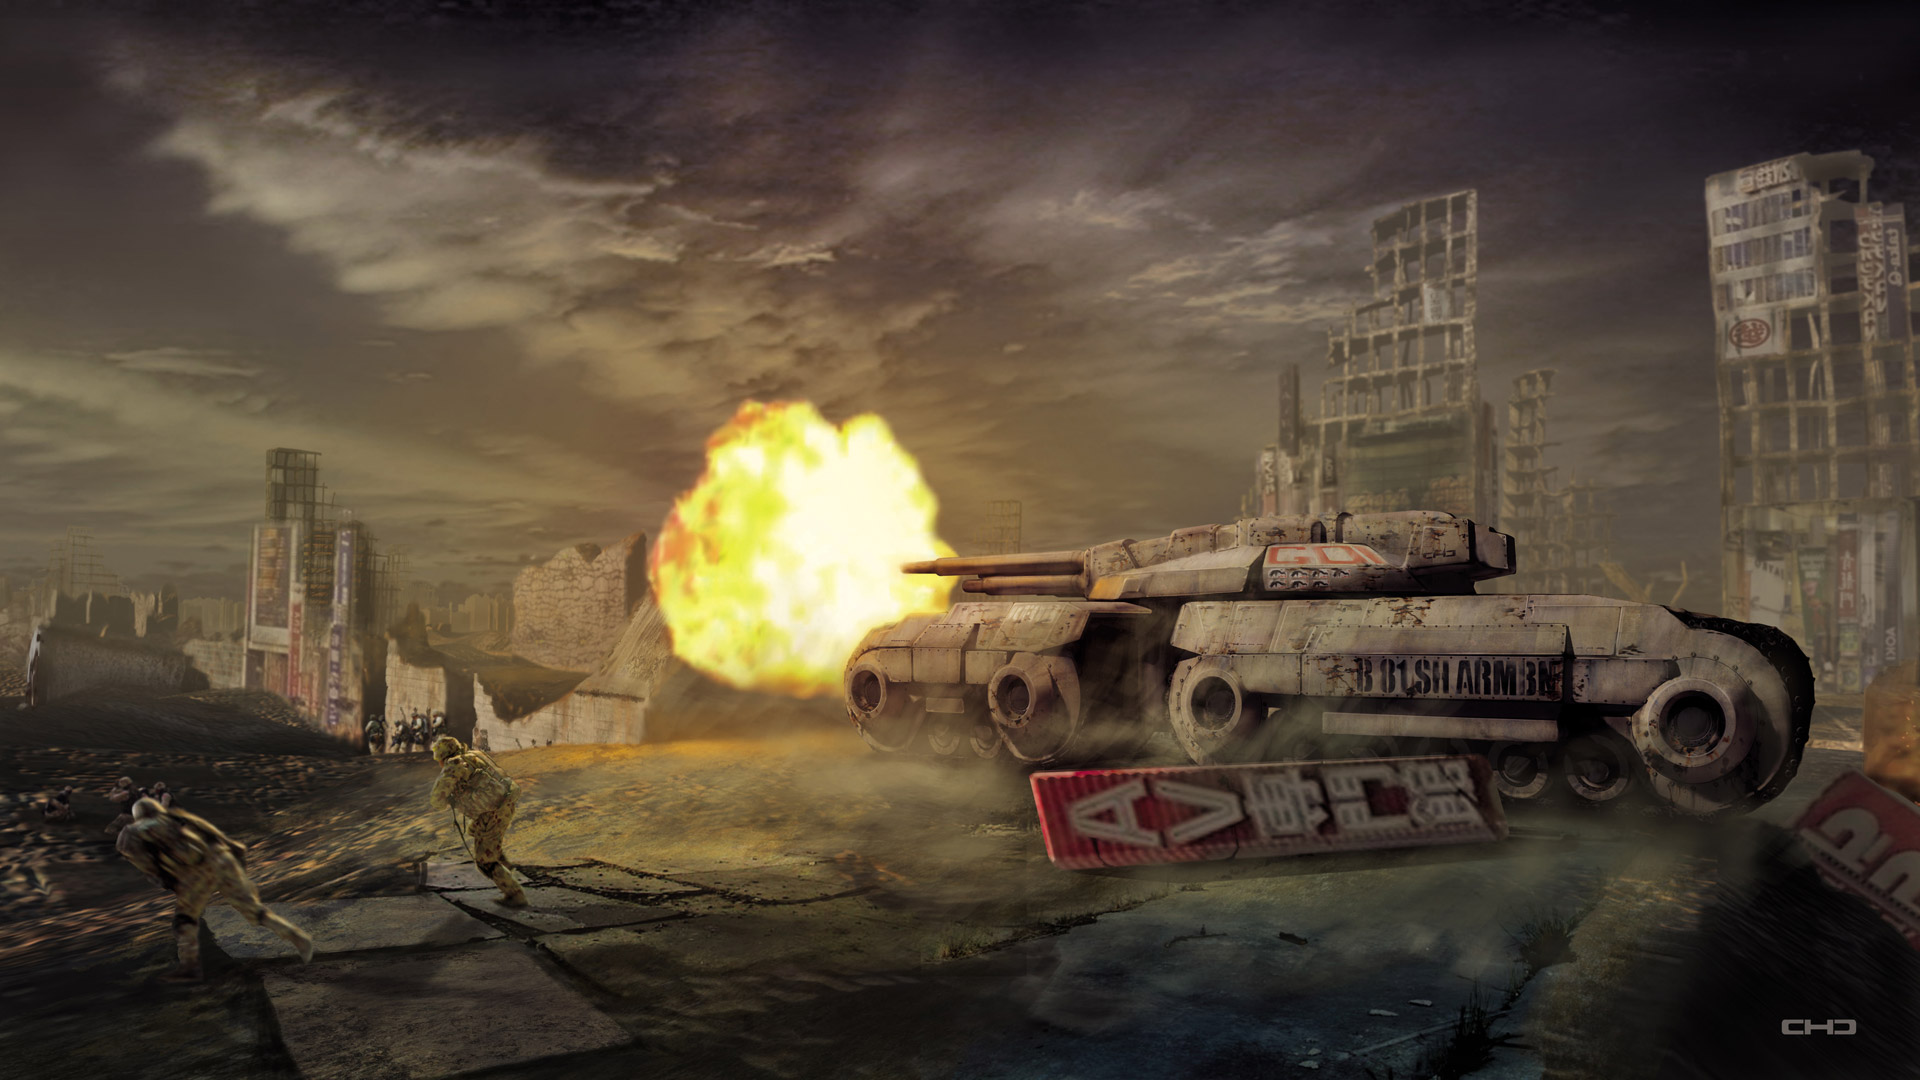 Command & Conquer 3 Wallpaper in 1920x1080